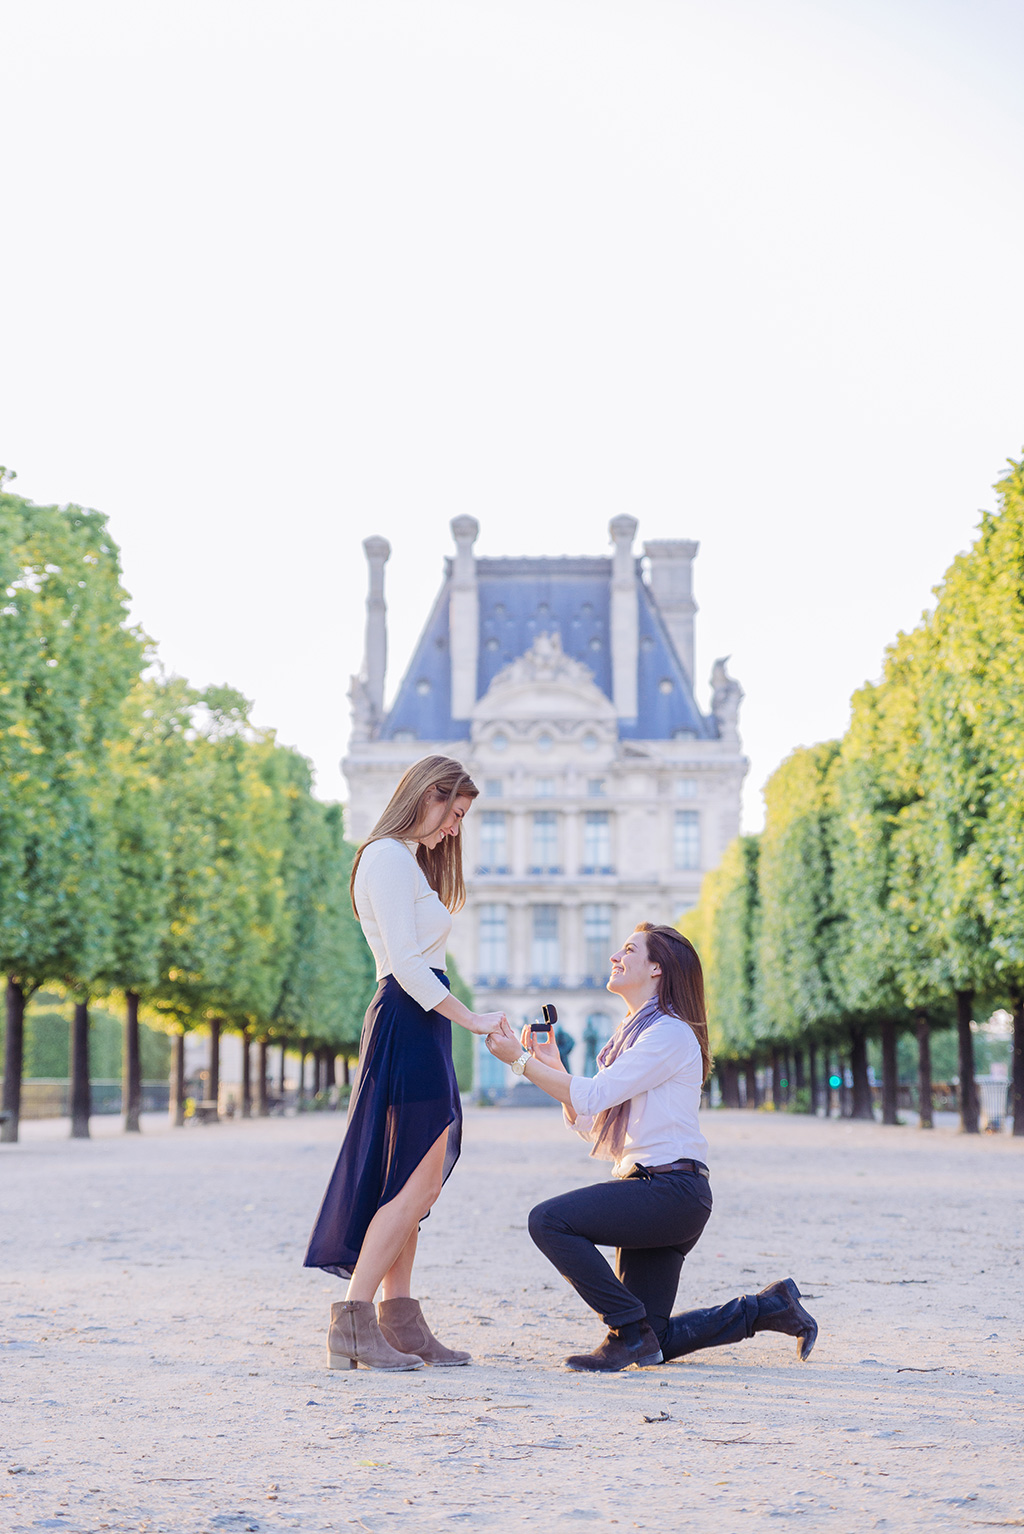 gloria-villa-same-sex-proposal-paris